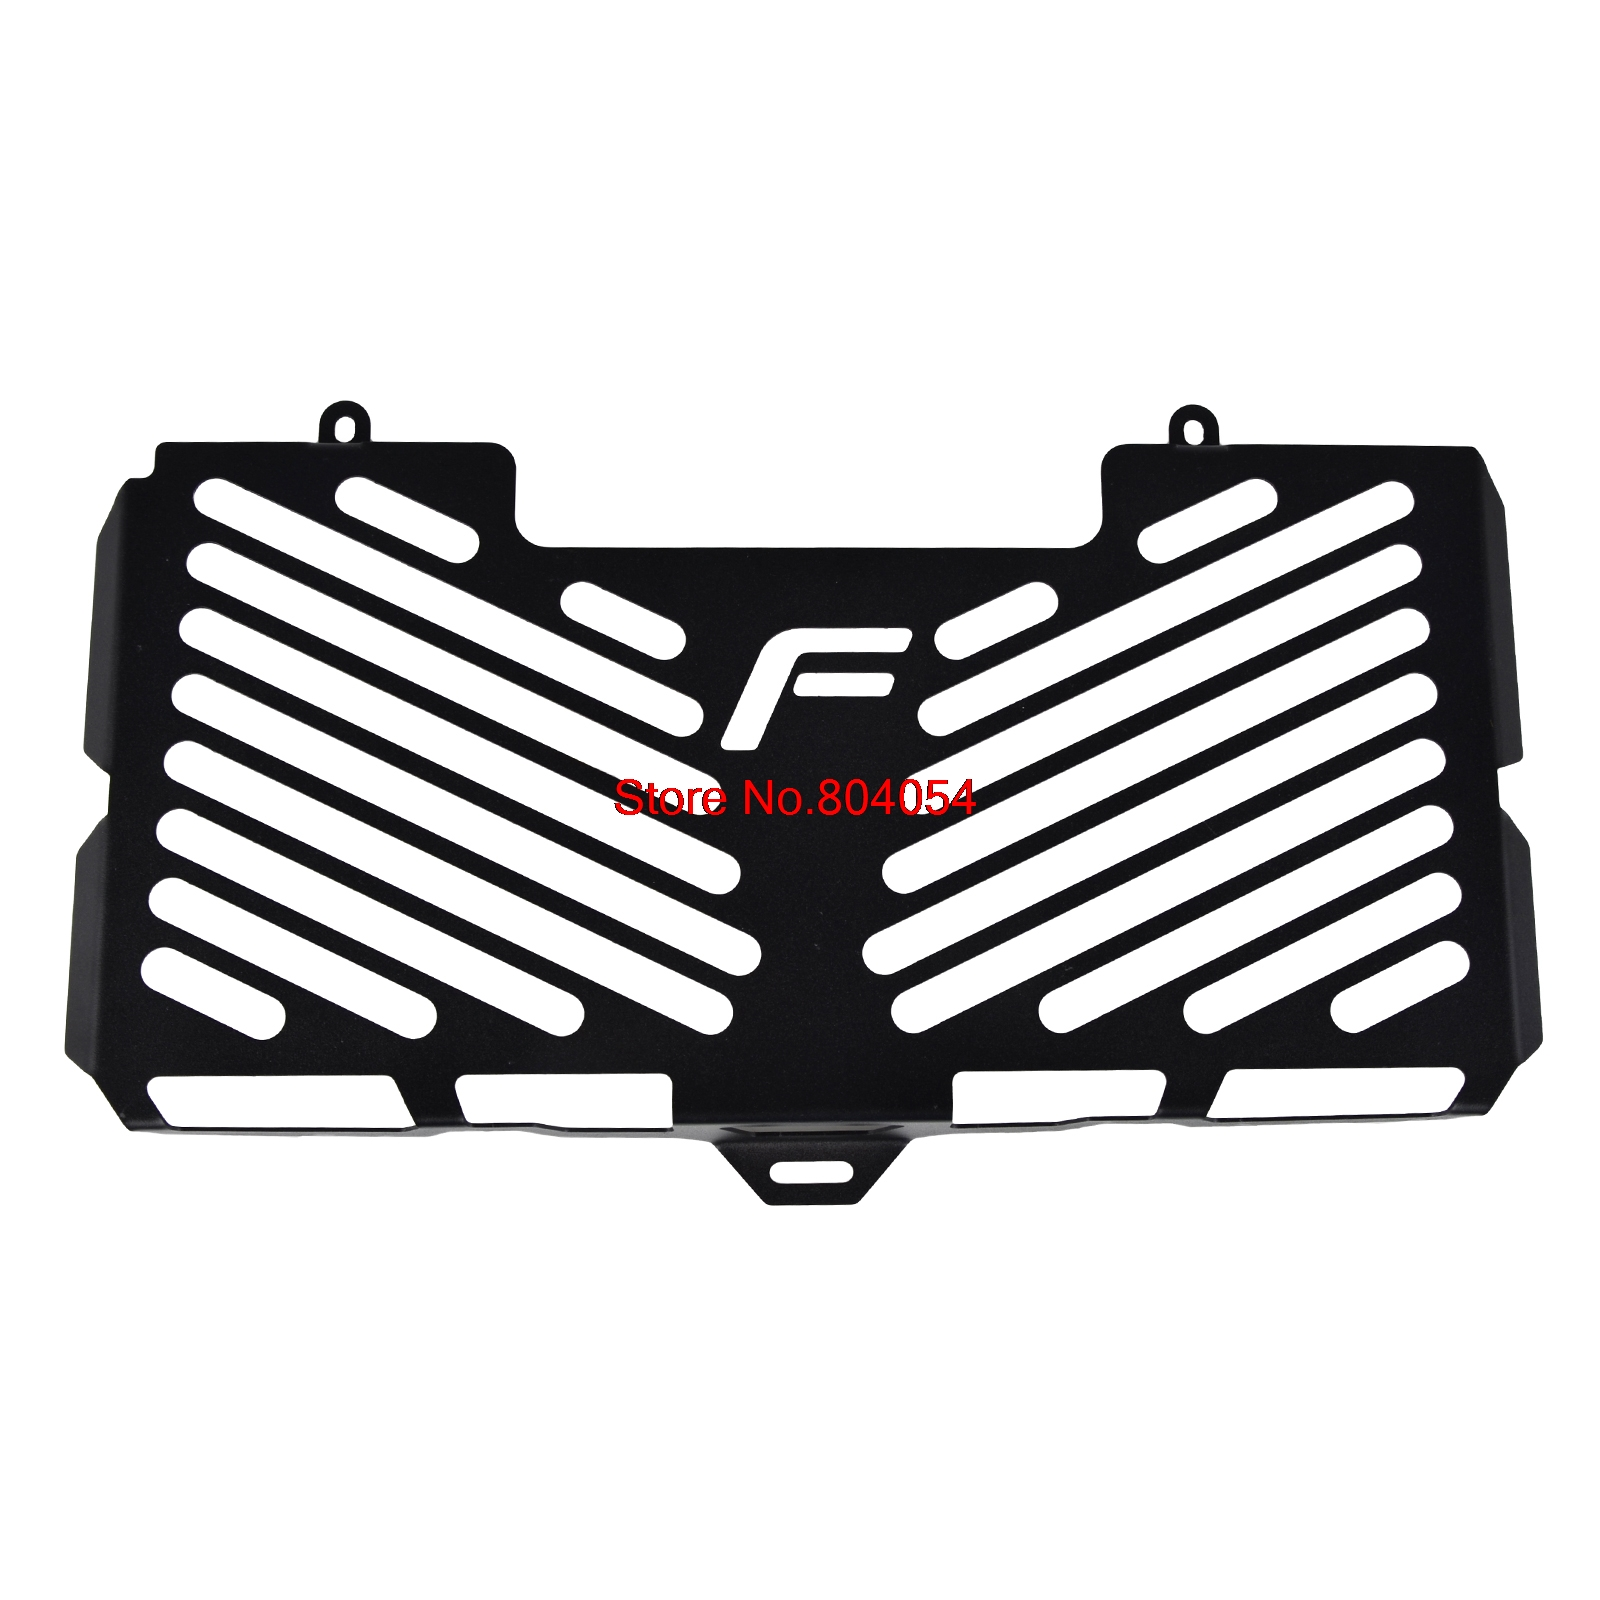 Motorcycle Engine Radiator Grill Grille Guard Cover Protector For BMW F800R 2009-2016 F800S 06-08 F650GS 08-12 F700GS 11-15 image